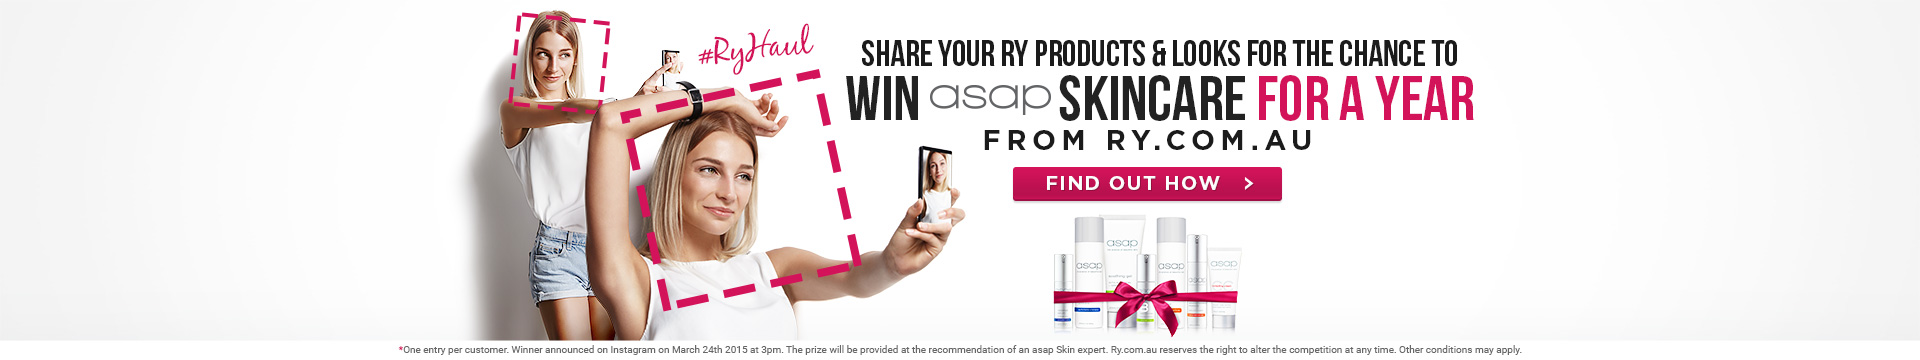 Chance to WIN a Years Worth of asap Skincare